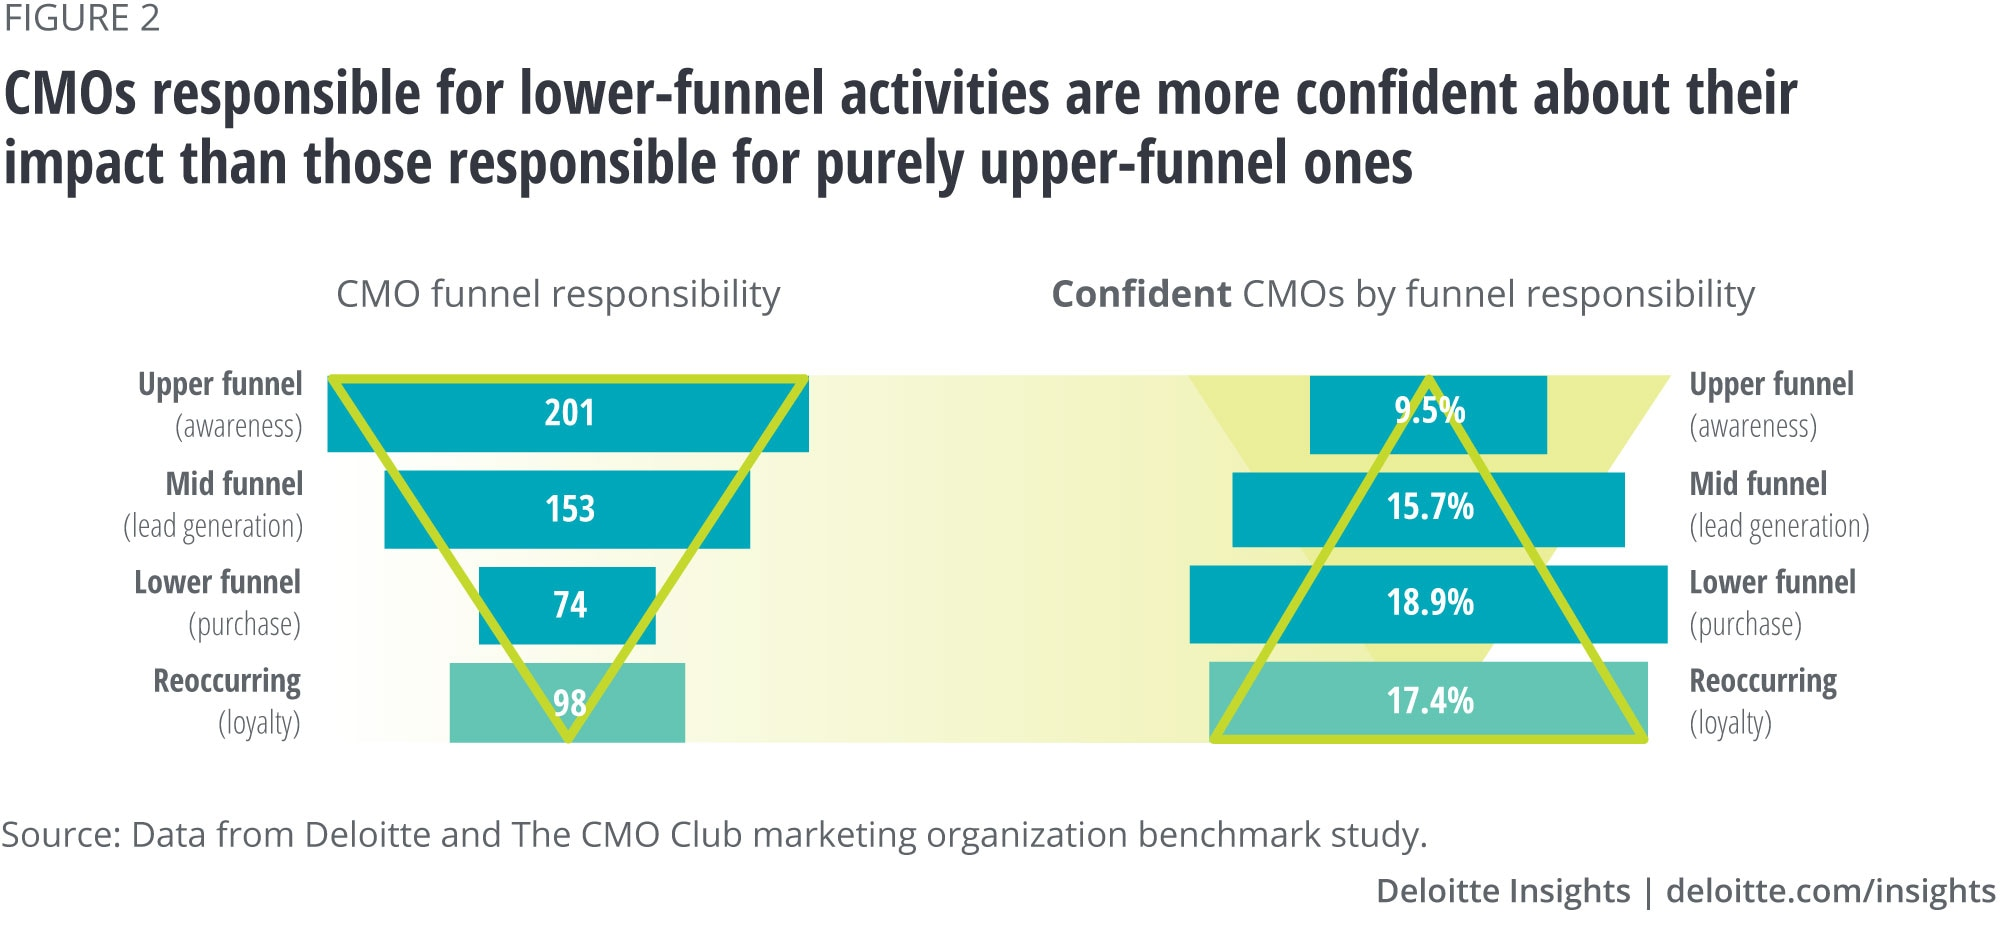 CMOs responsible for lower-funnel activities are more confident about their impact than those responsible for purely upper-funnel ones